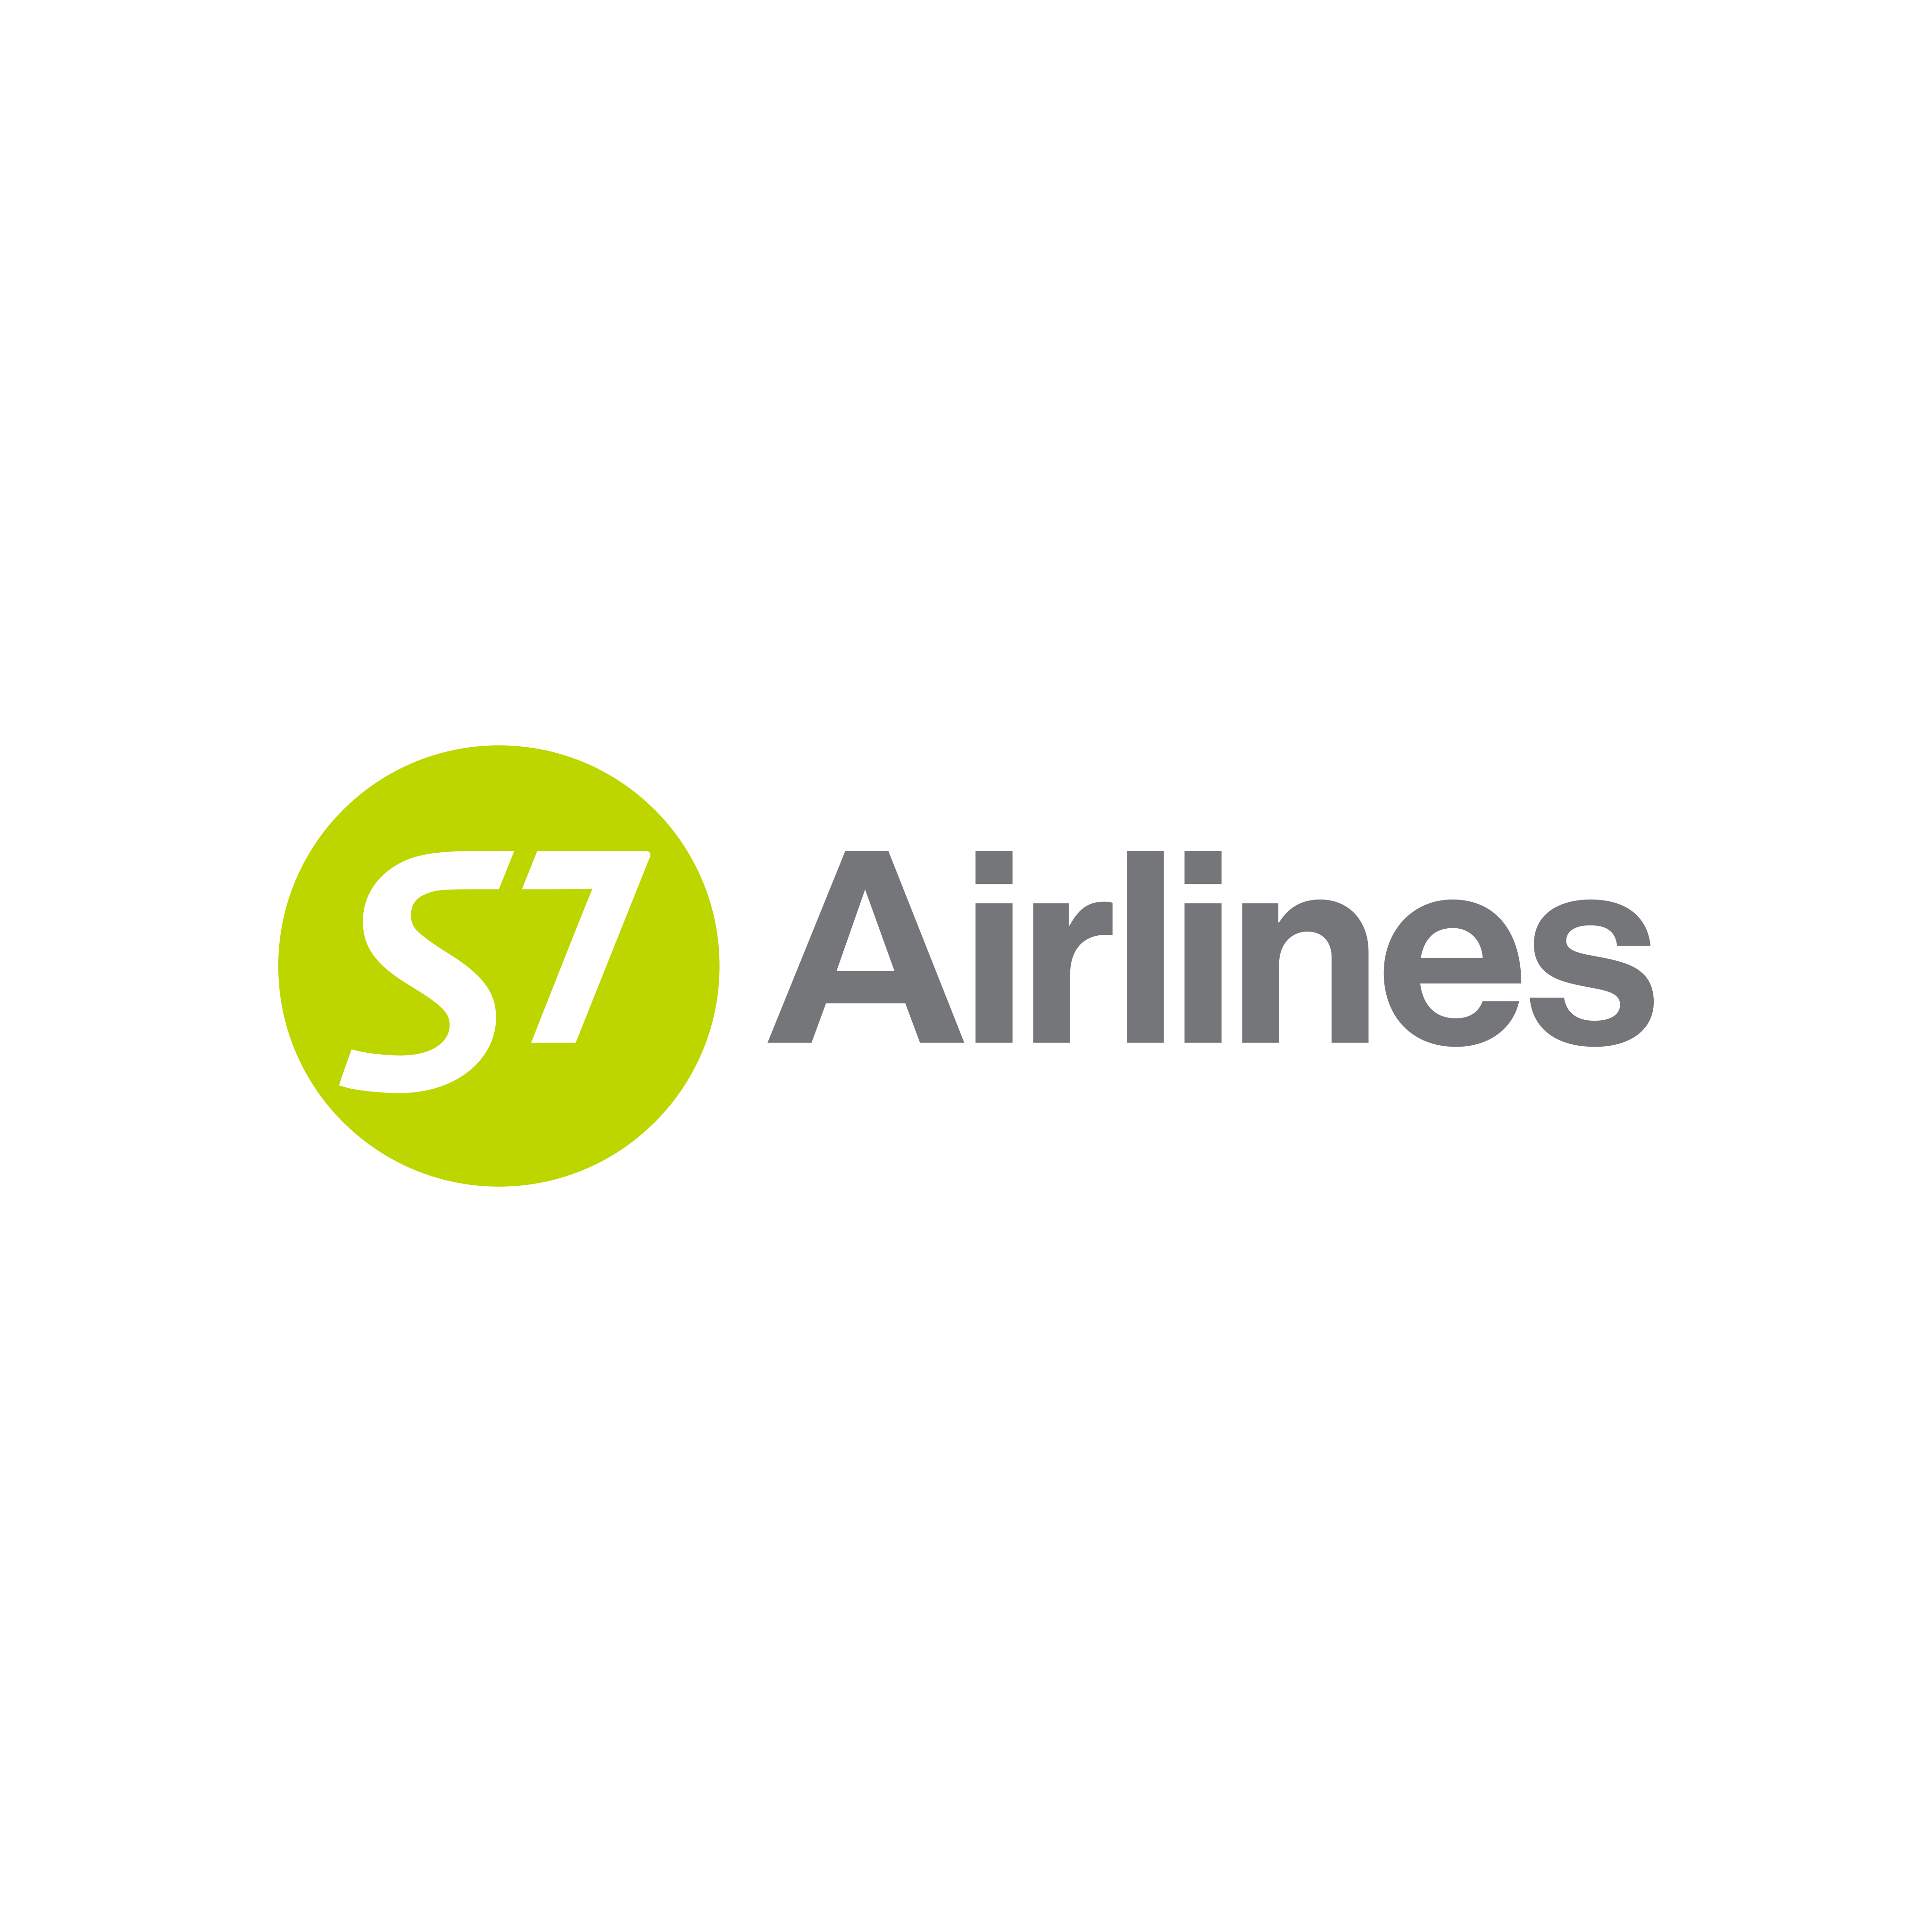 s7 airlines logo 0 - S7 Airlines Logo